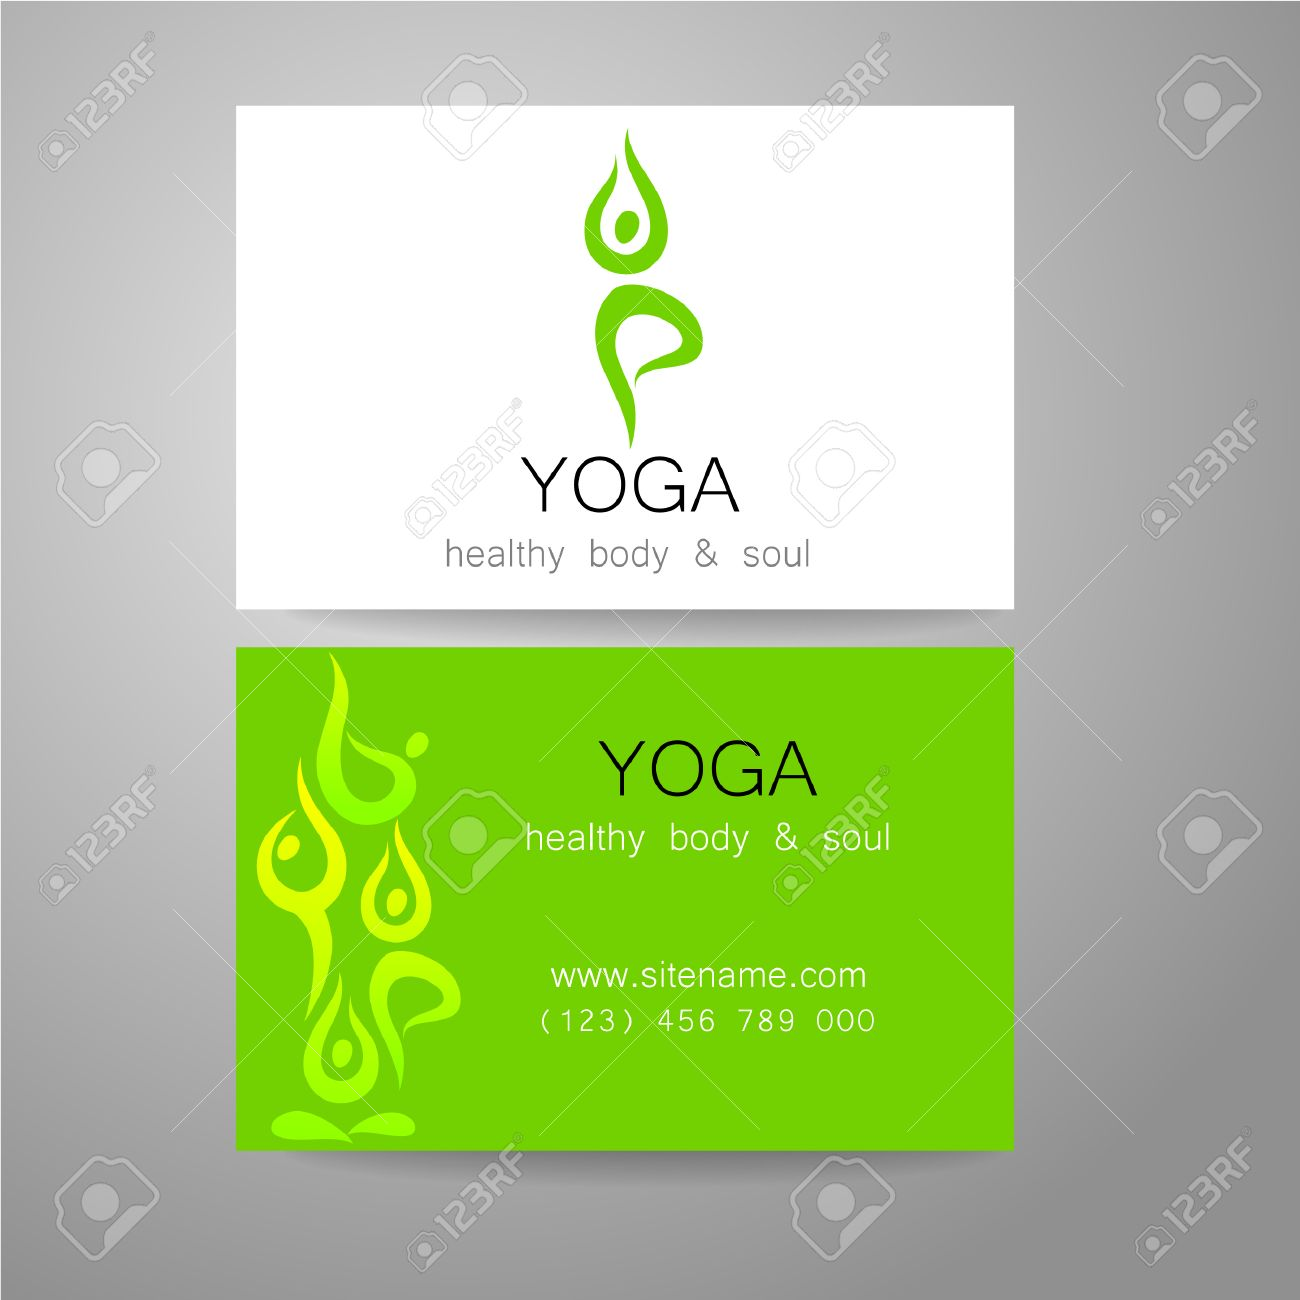 Yoga logo sign design and business cards template for yoga yoga logo sign design and business cards template for yoga studios classes reheart Choice Image